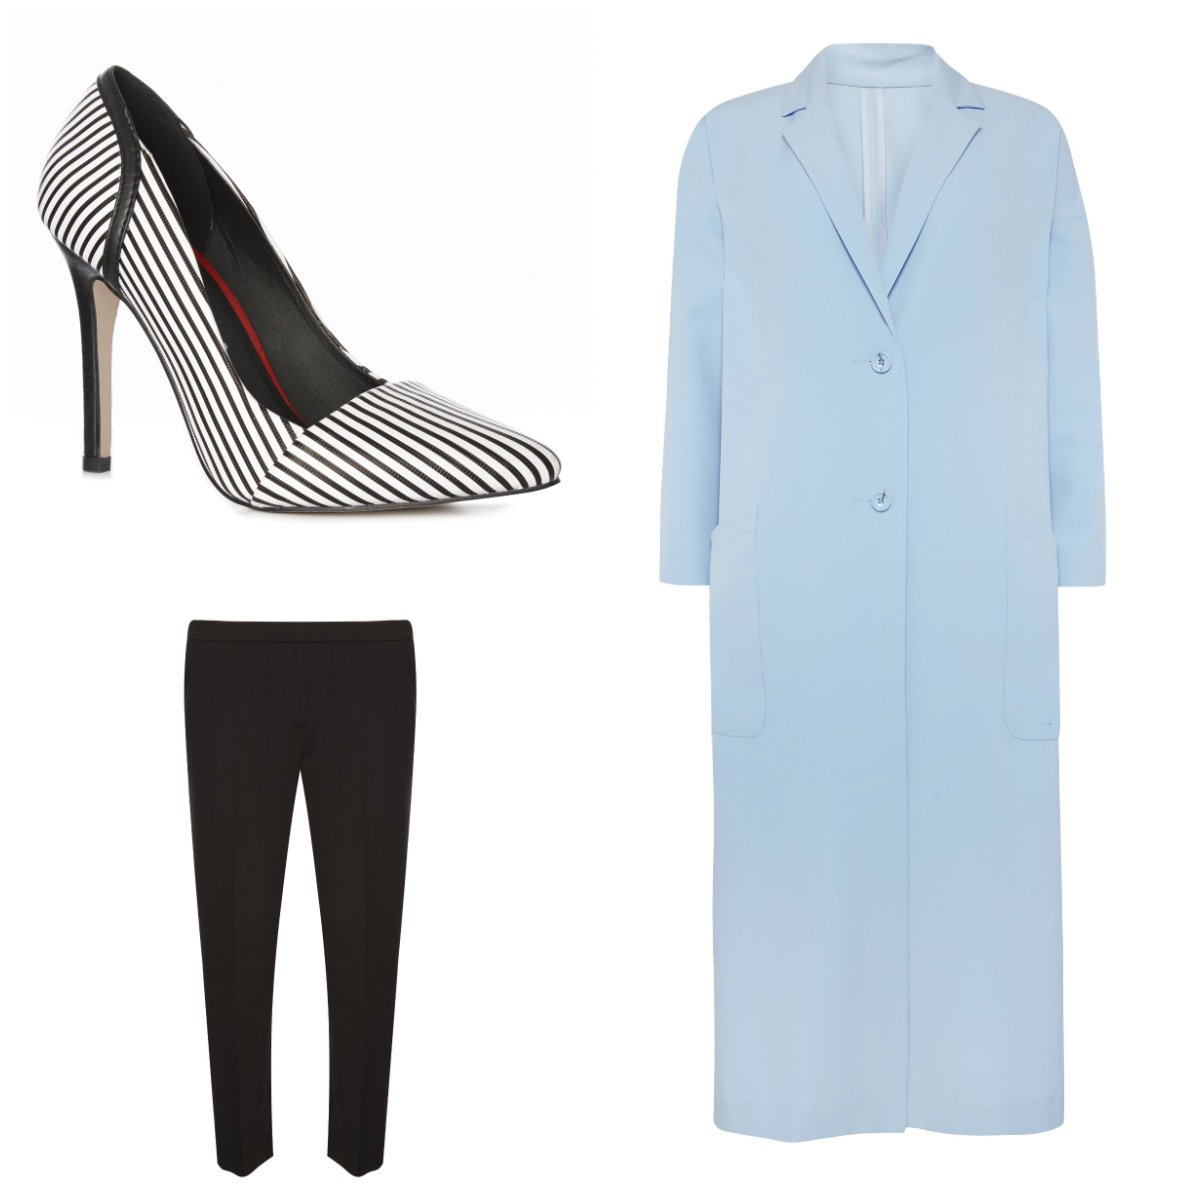 Some the amazing pieces in Penneys right now! The duster coat is only  €28! Get it!